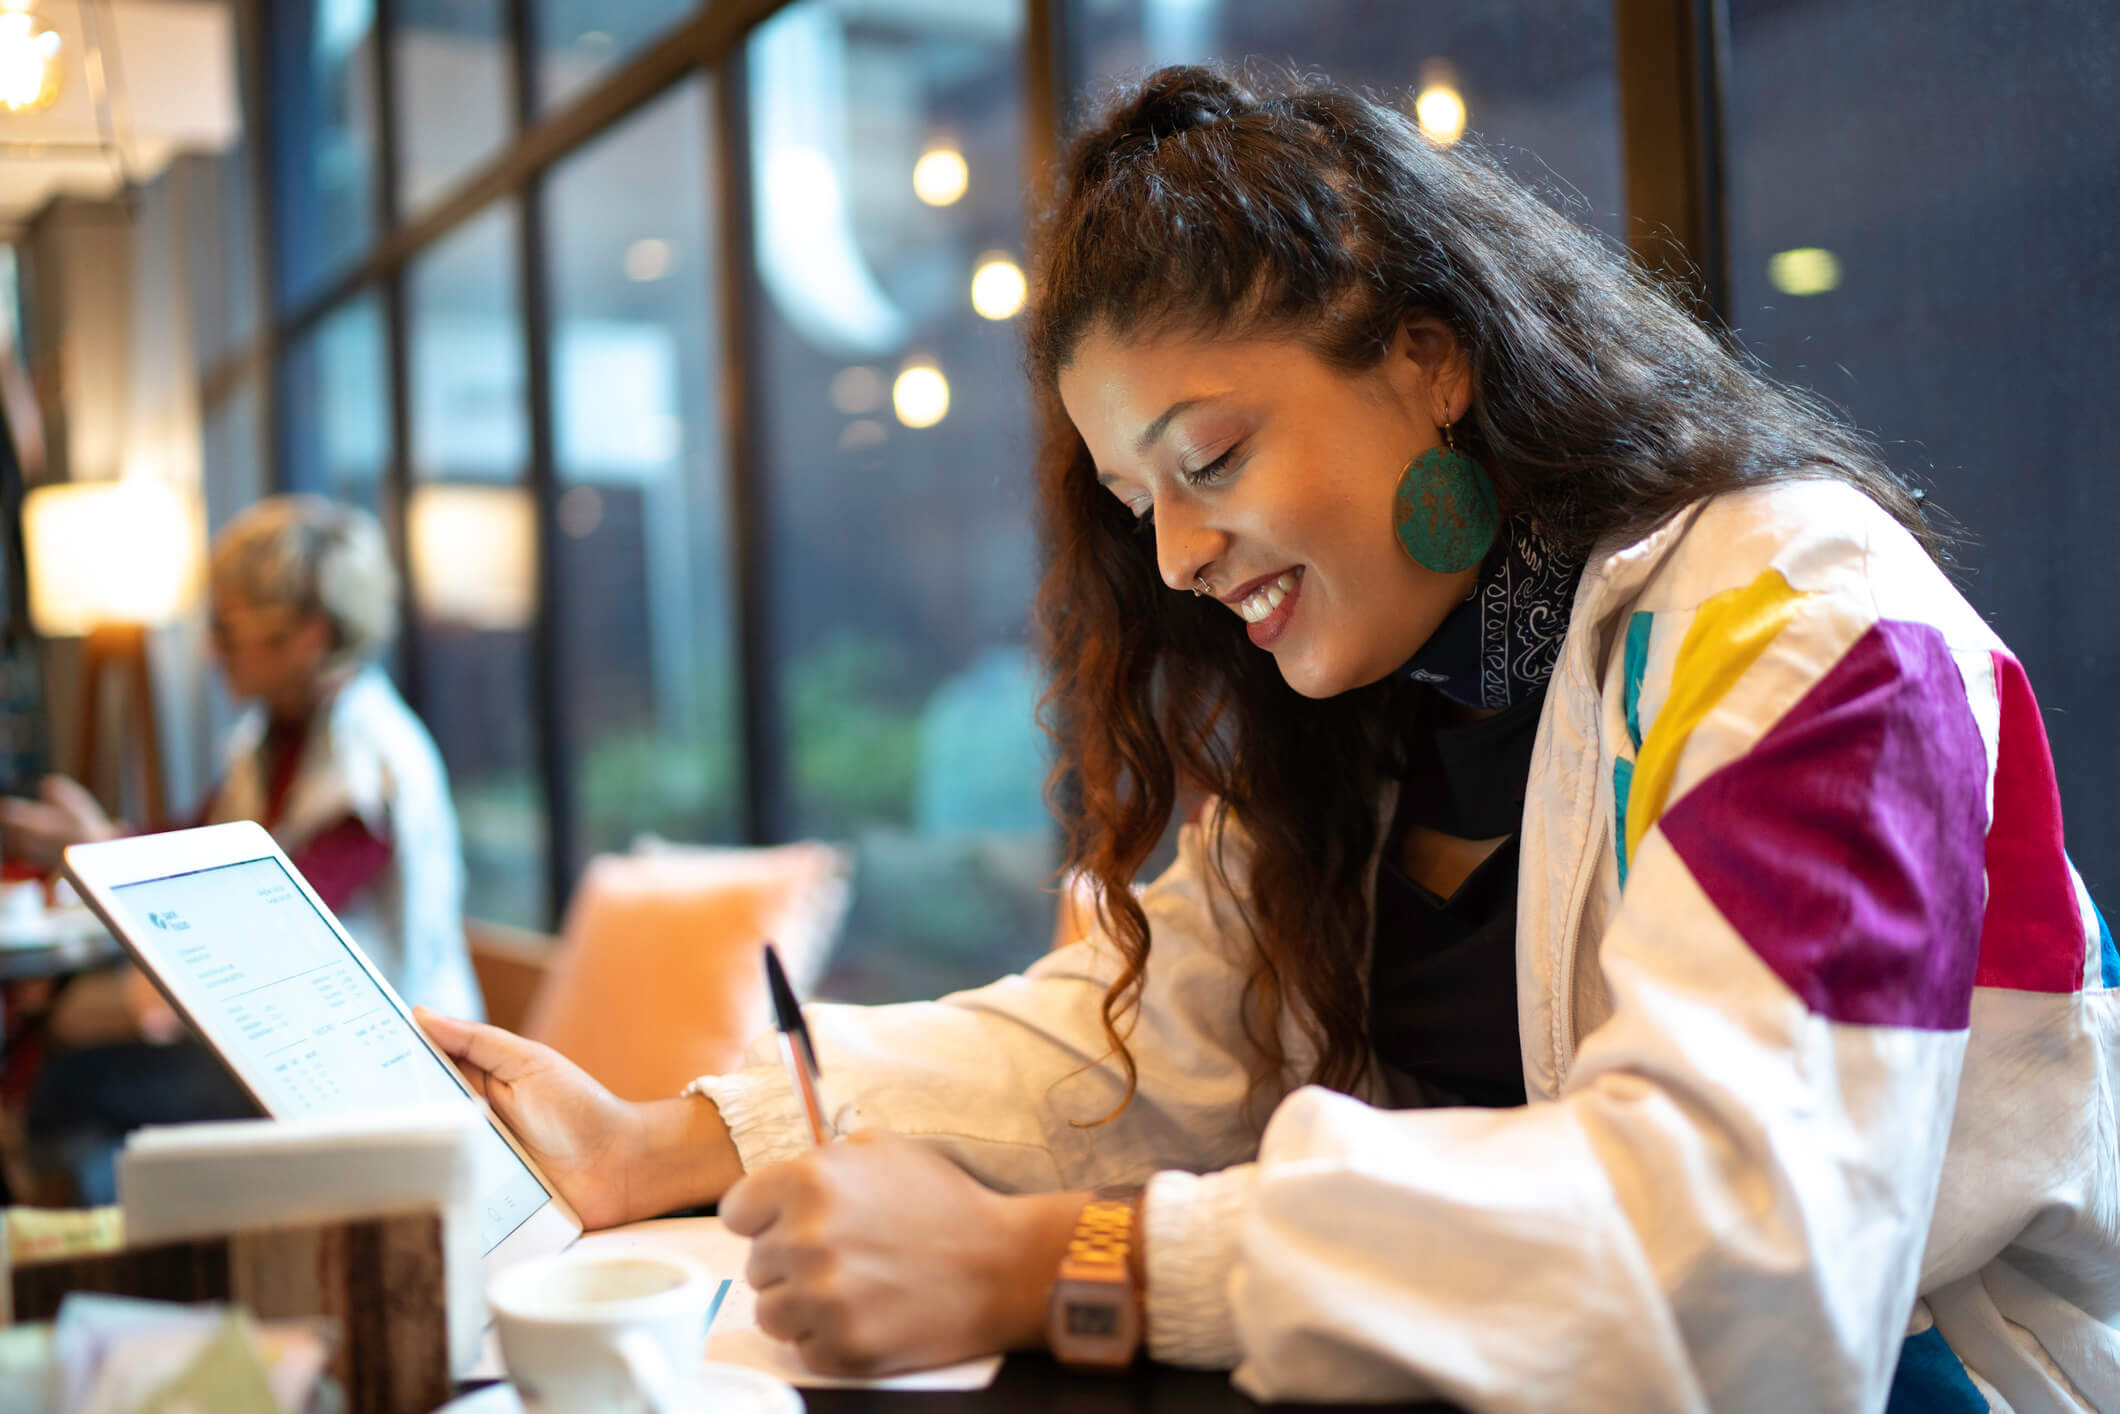 Young woman smiling as she writes down notes while holding an iPad